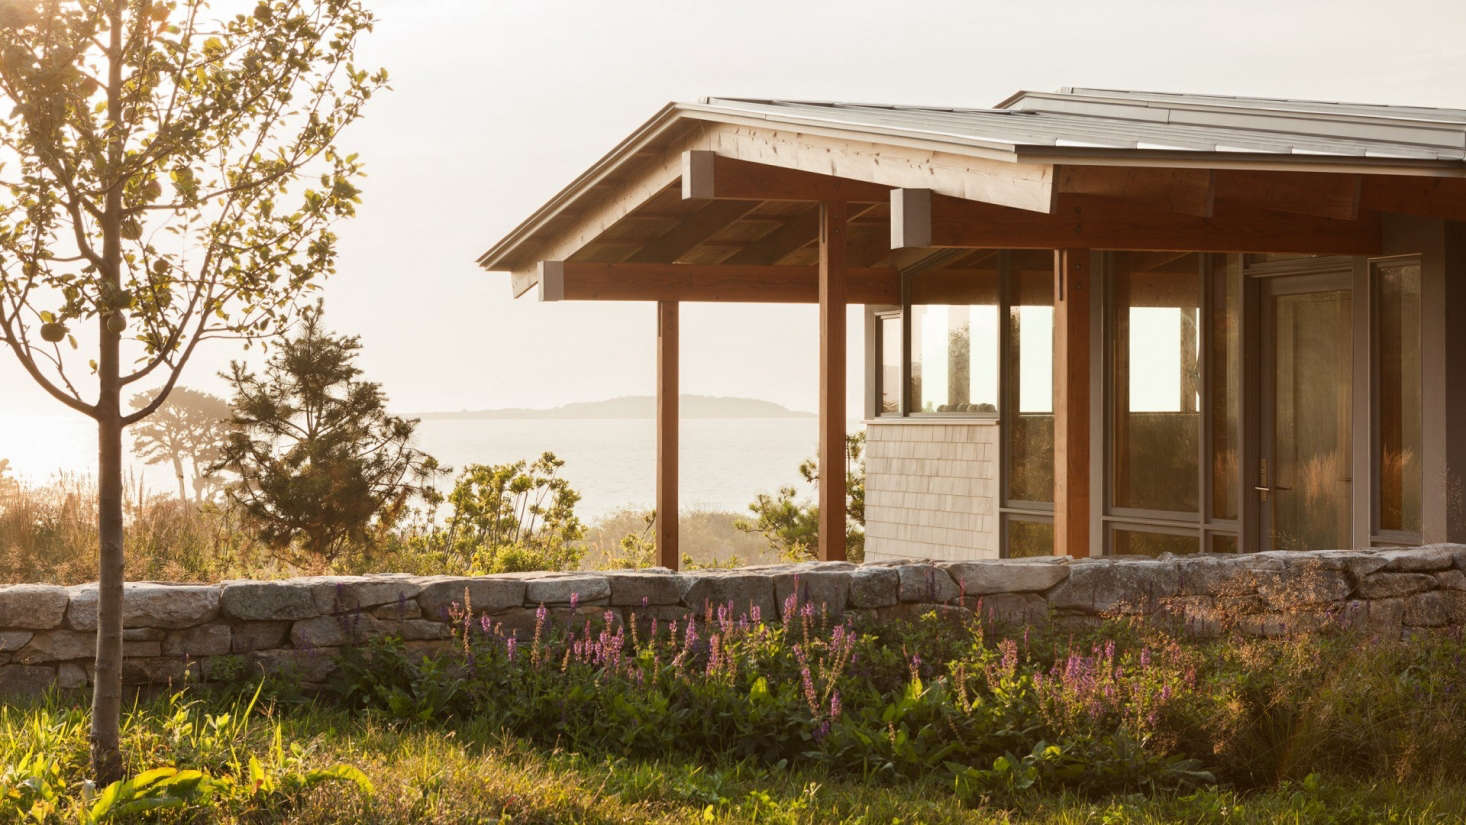 The house at twilight. The stone walls, open meadows, and apple trees recallthe property&#8